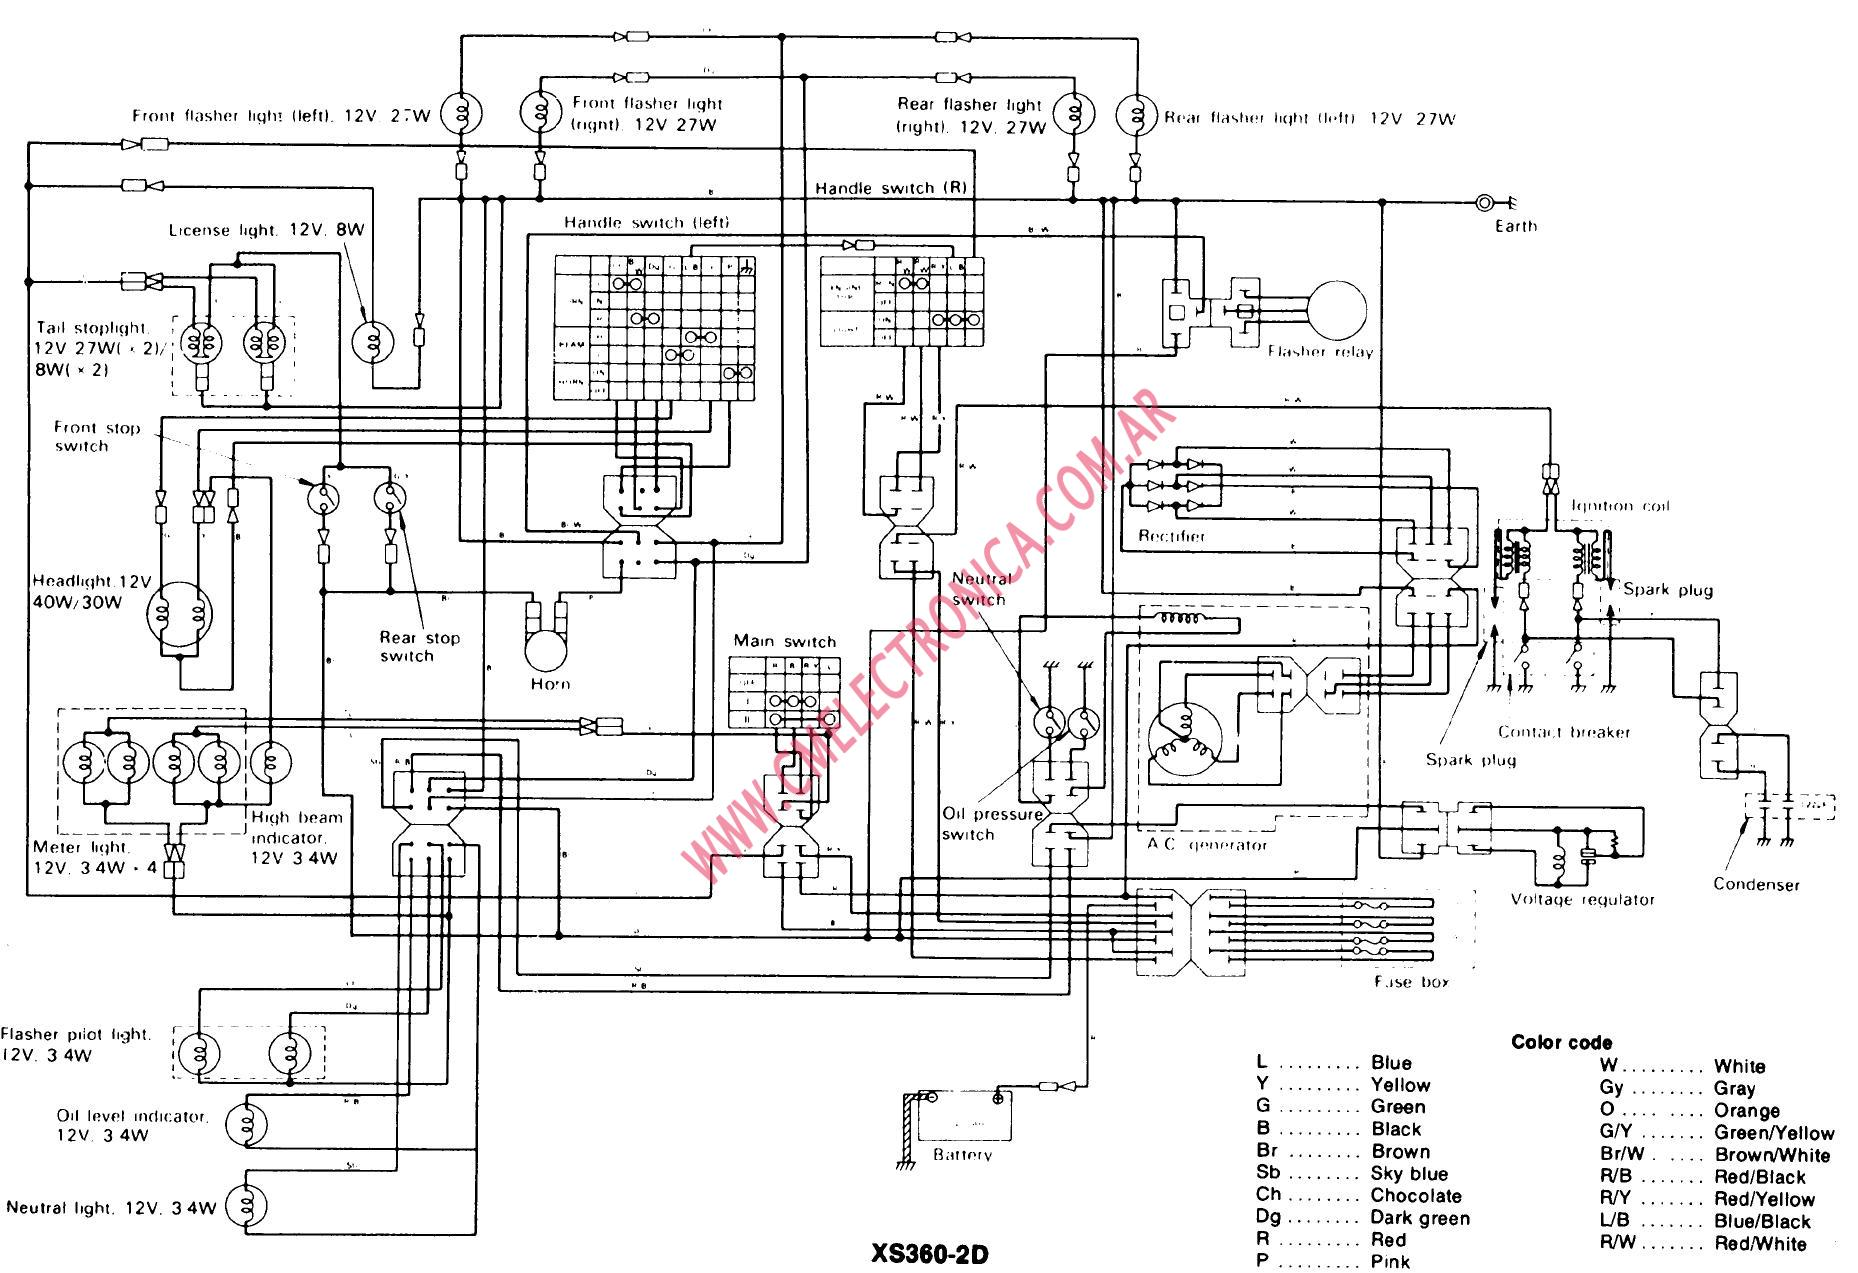 yamaha xs 360 wiring diagram   28 wiring diagram images